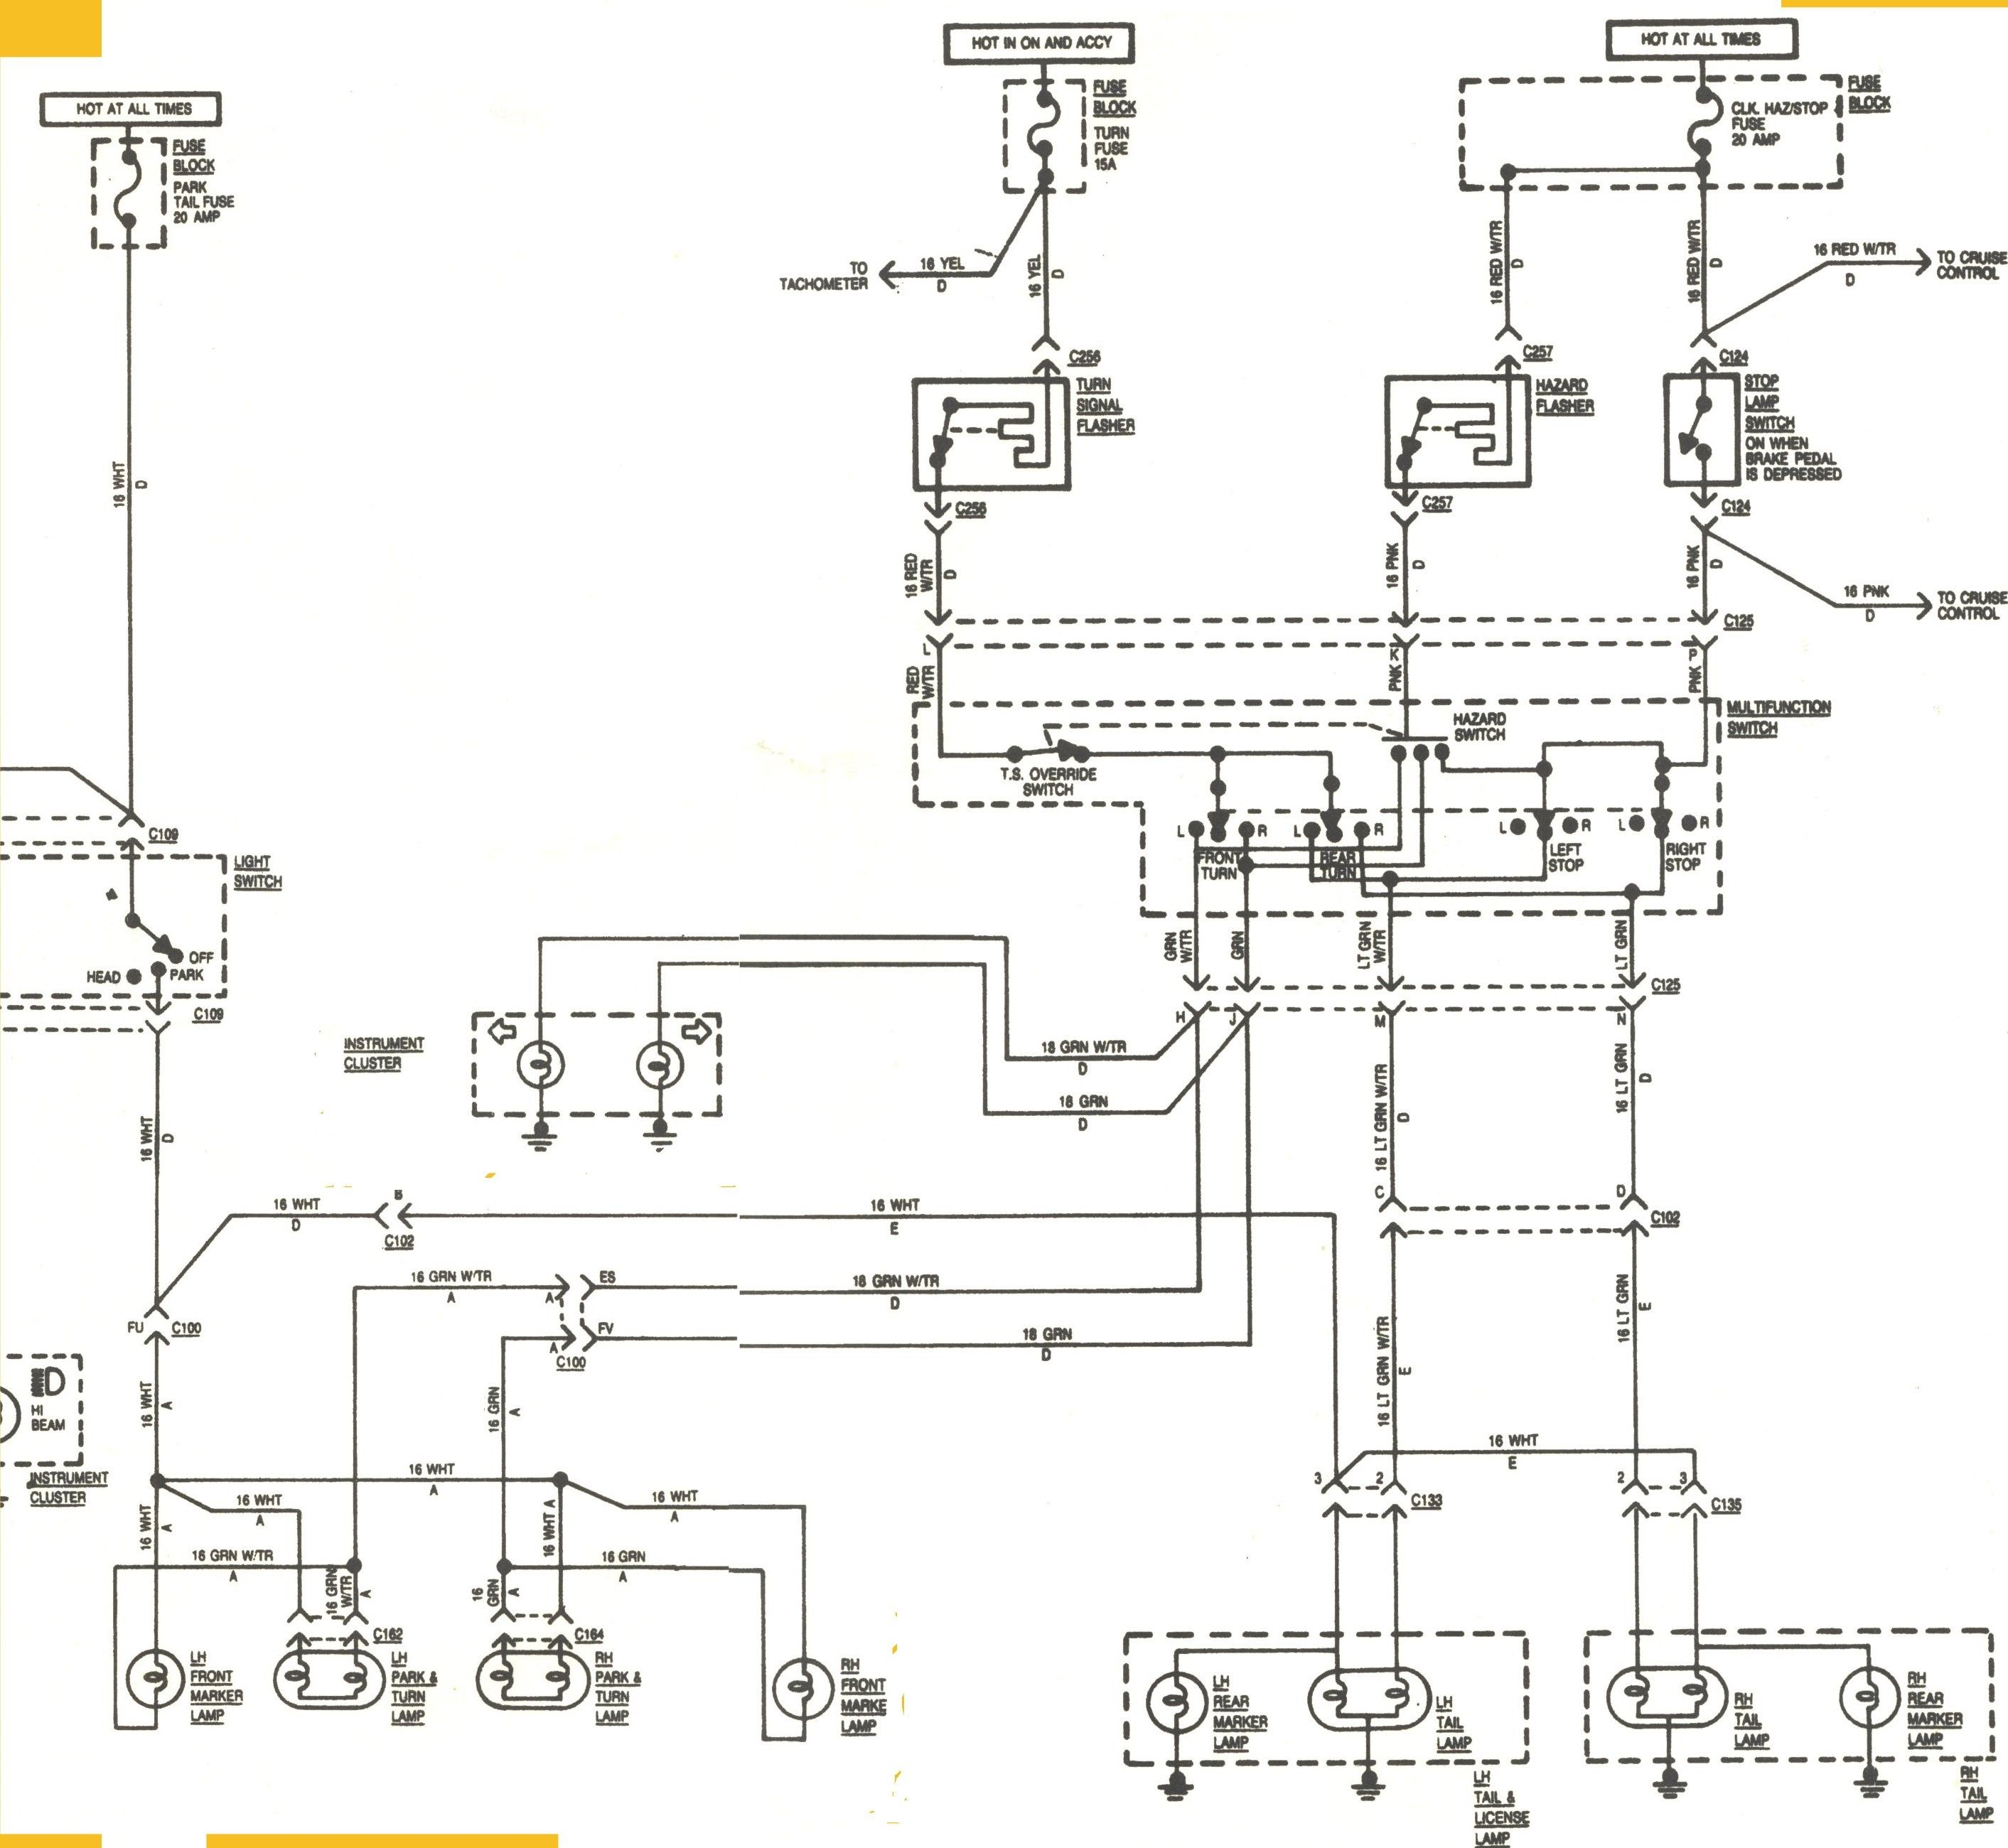 New 2004 Dodge Ram 1500 Ignition Wiring Diagram Diagram Diagramsample Diagramtemplate Wiringdiagram Diagramchart Worksheet Work With Images Jeep Ford Ranger Diagram